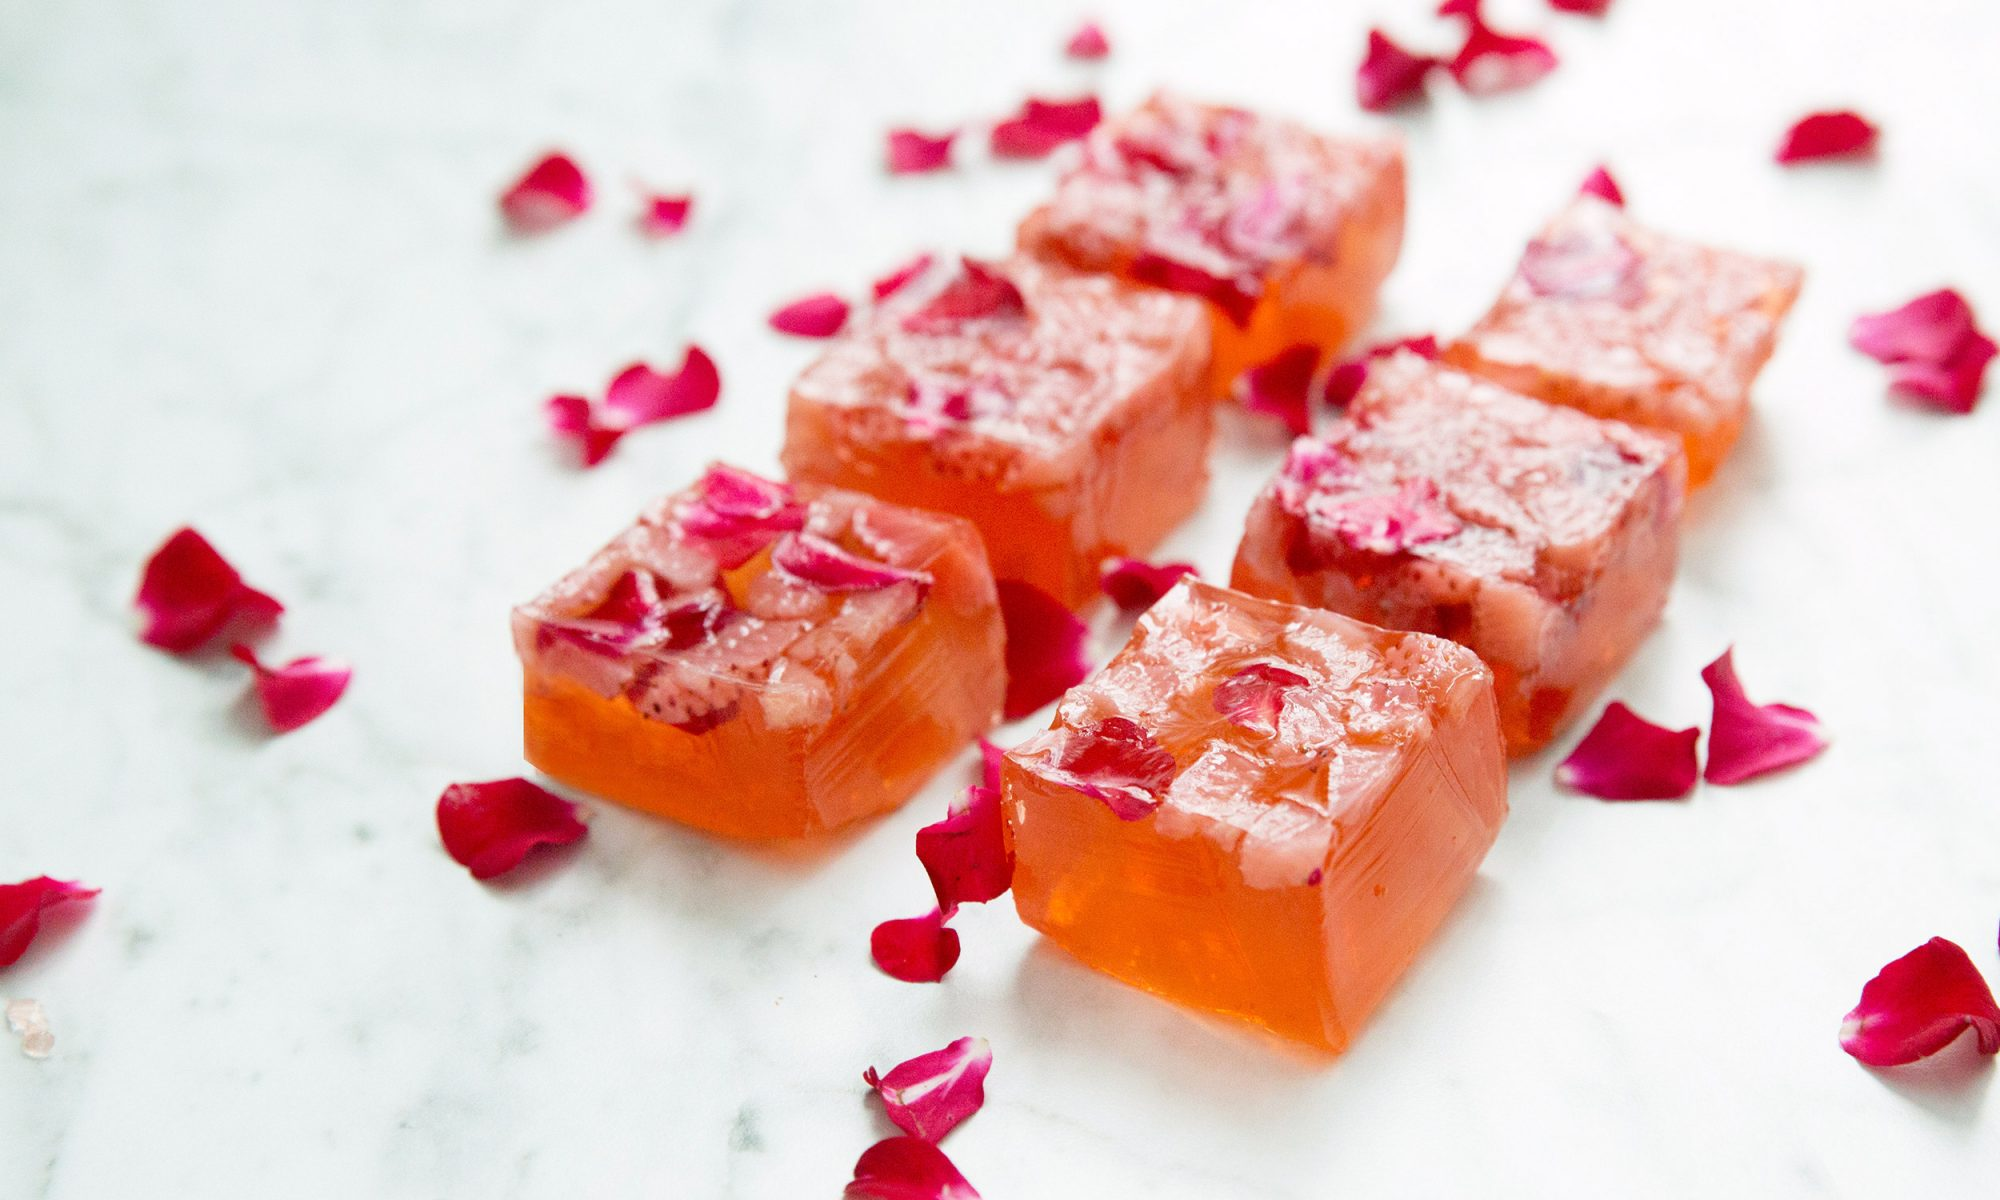 EC: Strawberry and Champagne Jello Shots Are More Dangerous Than They Look